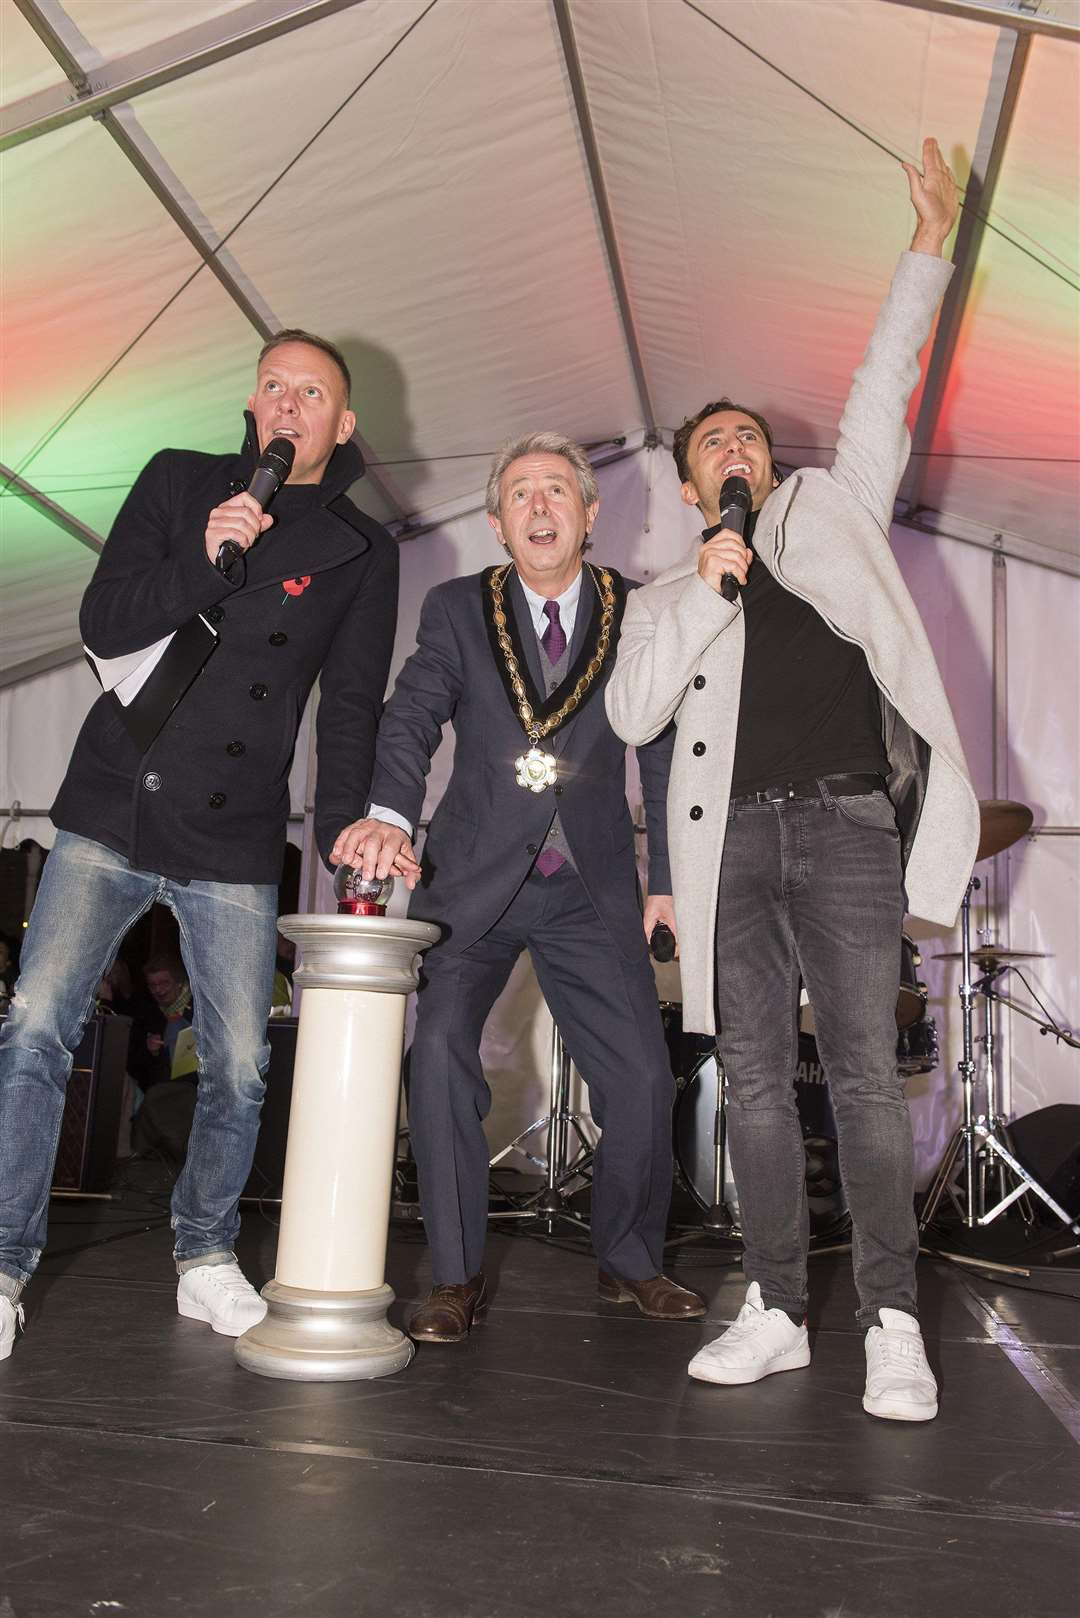 Last year the Christmas lights were switched on by Coronation Street's Anthony Cotton and Cllr Andy Drummond, who was Newmarket's mayor